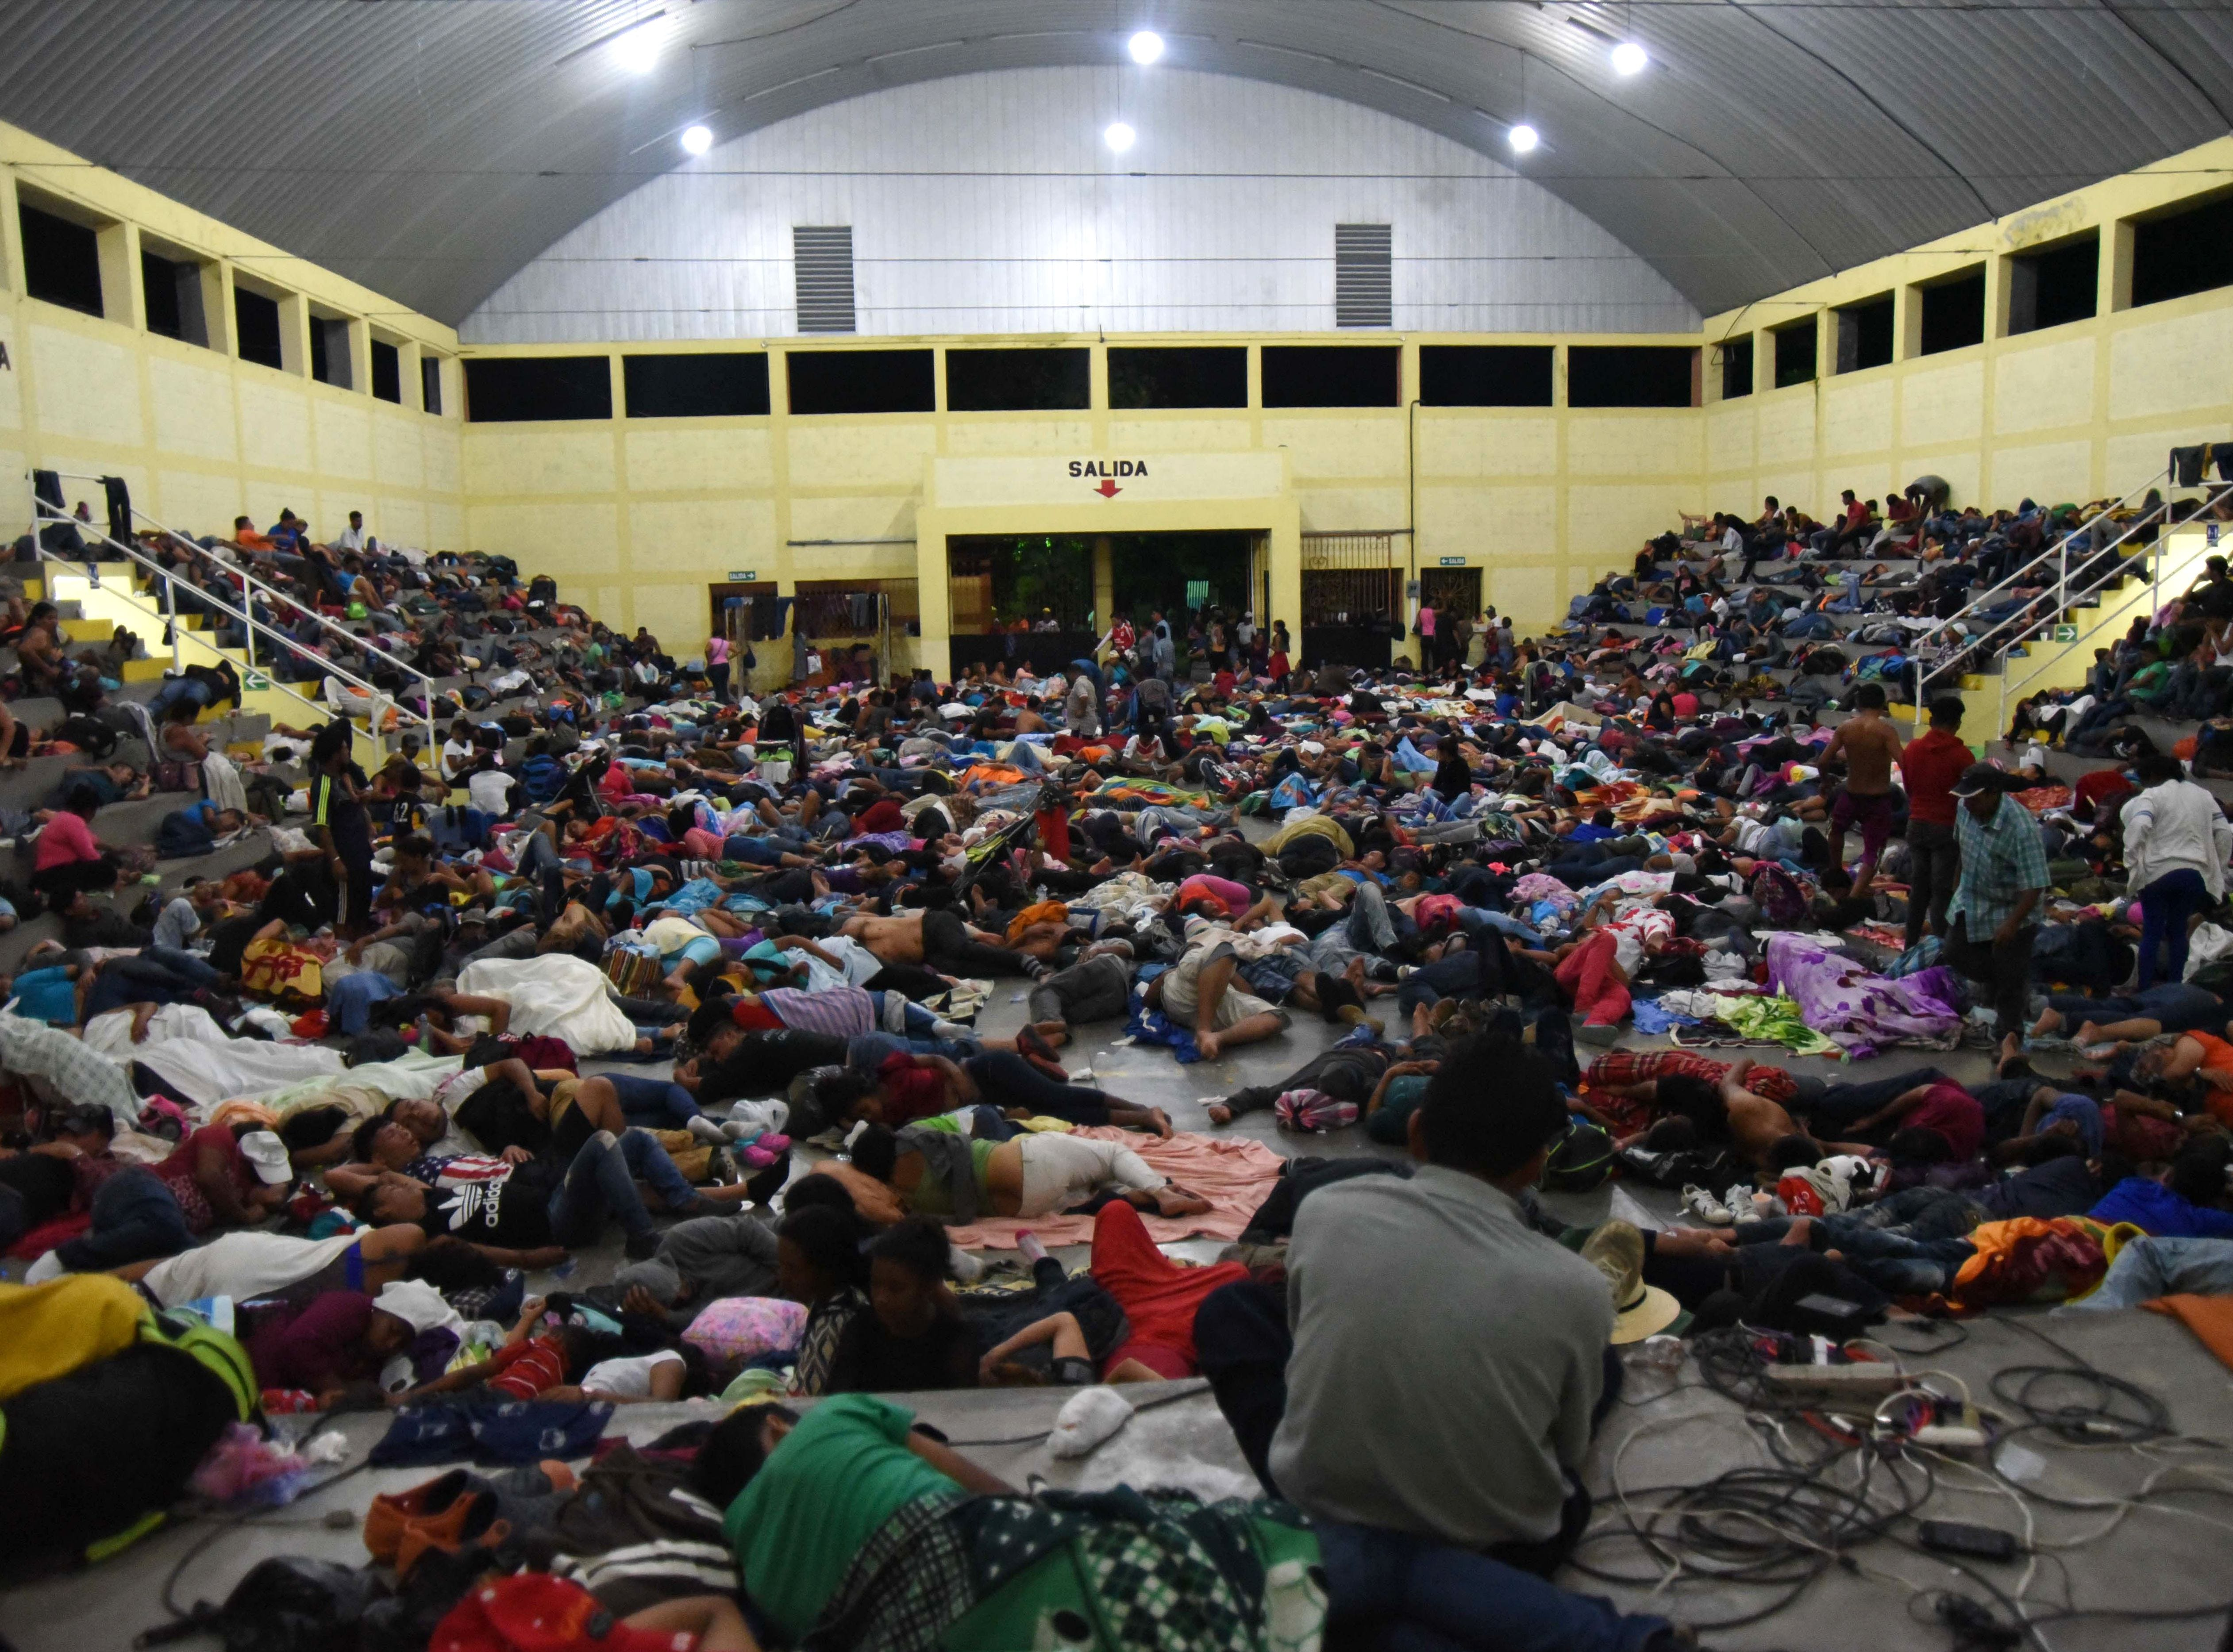 Honduran migrants heading to the United States rest in the gym of a Catholic church in Chiquimula, Guatemala, on Oct. 16, 2018. President Donald Trump warned Honduras he will cut millions of dollars in aid if the group of about 2,000 migrants is allowed to reach the United States.